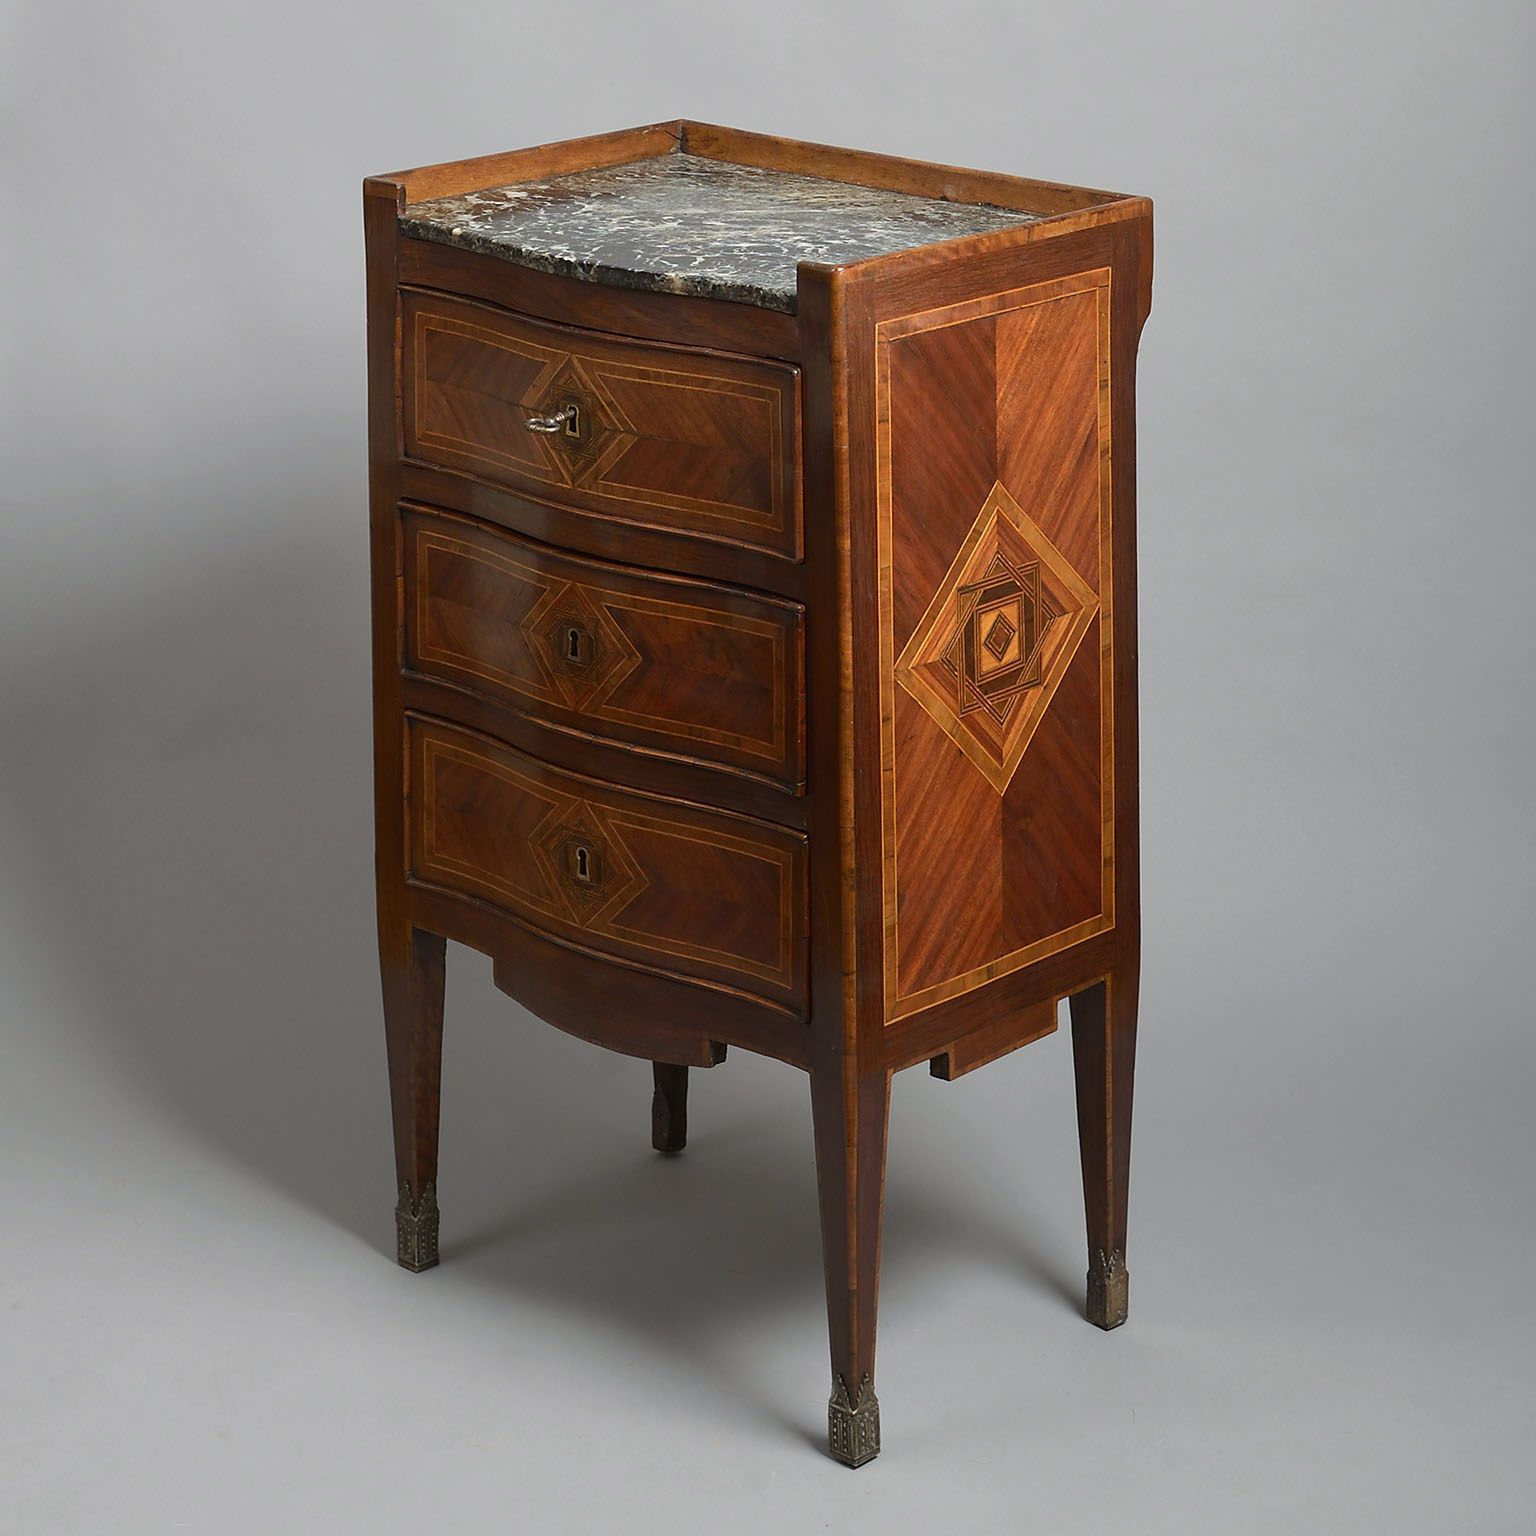 Pair of Serpentine Fronted Mahogany Inlaid Bedside Tables